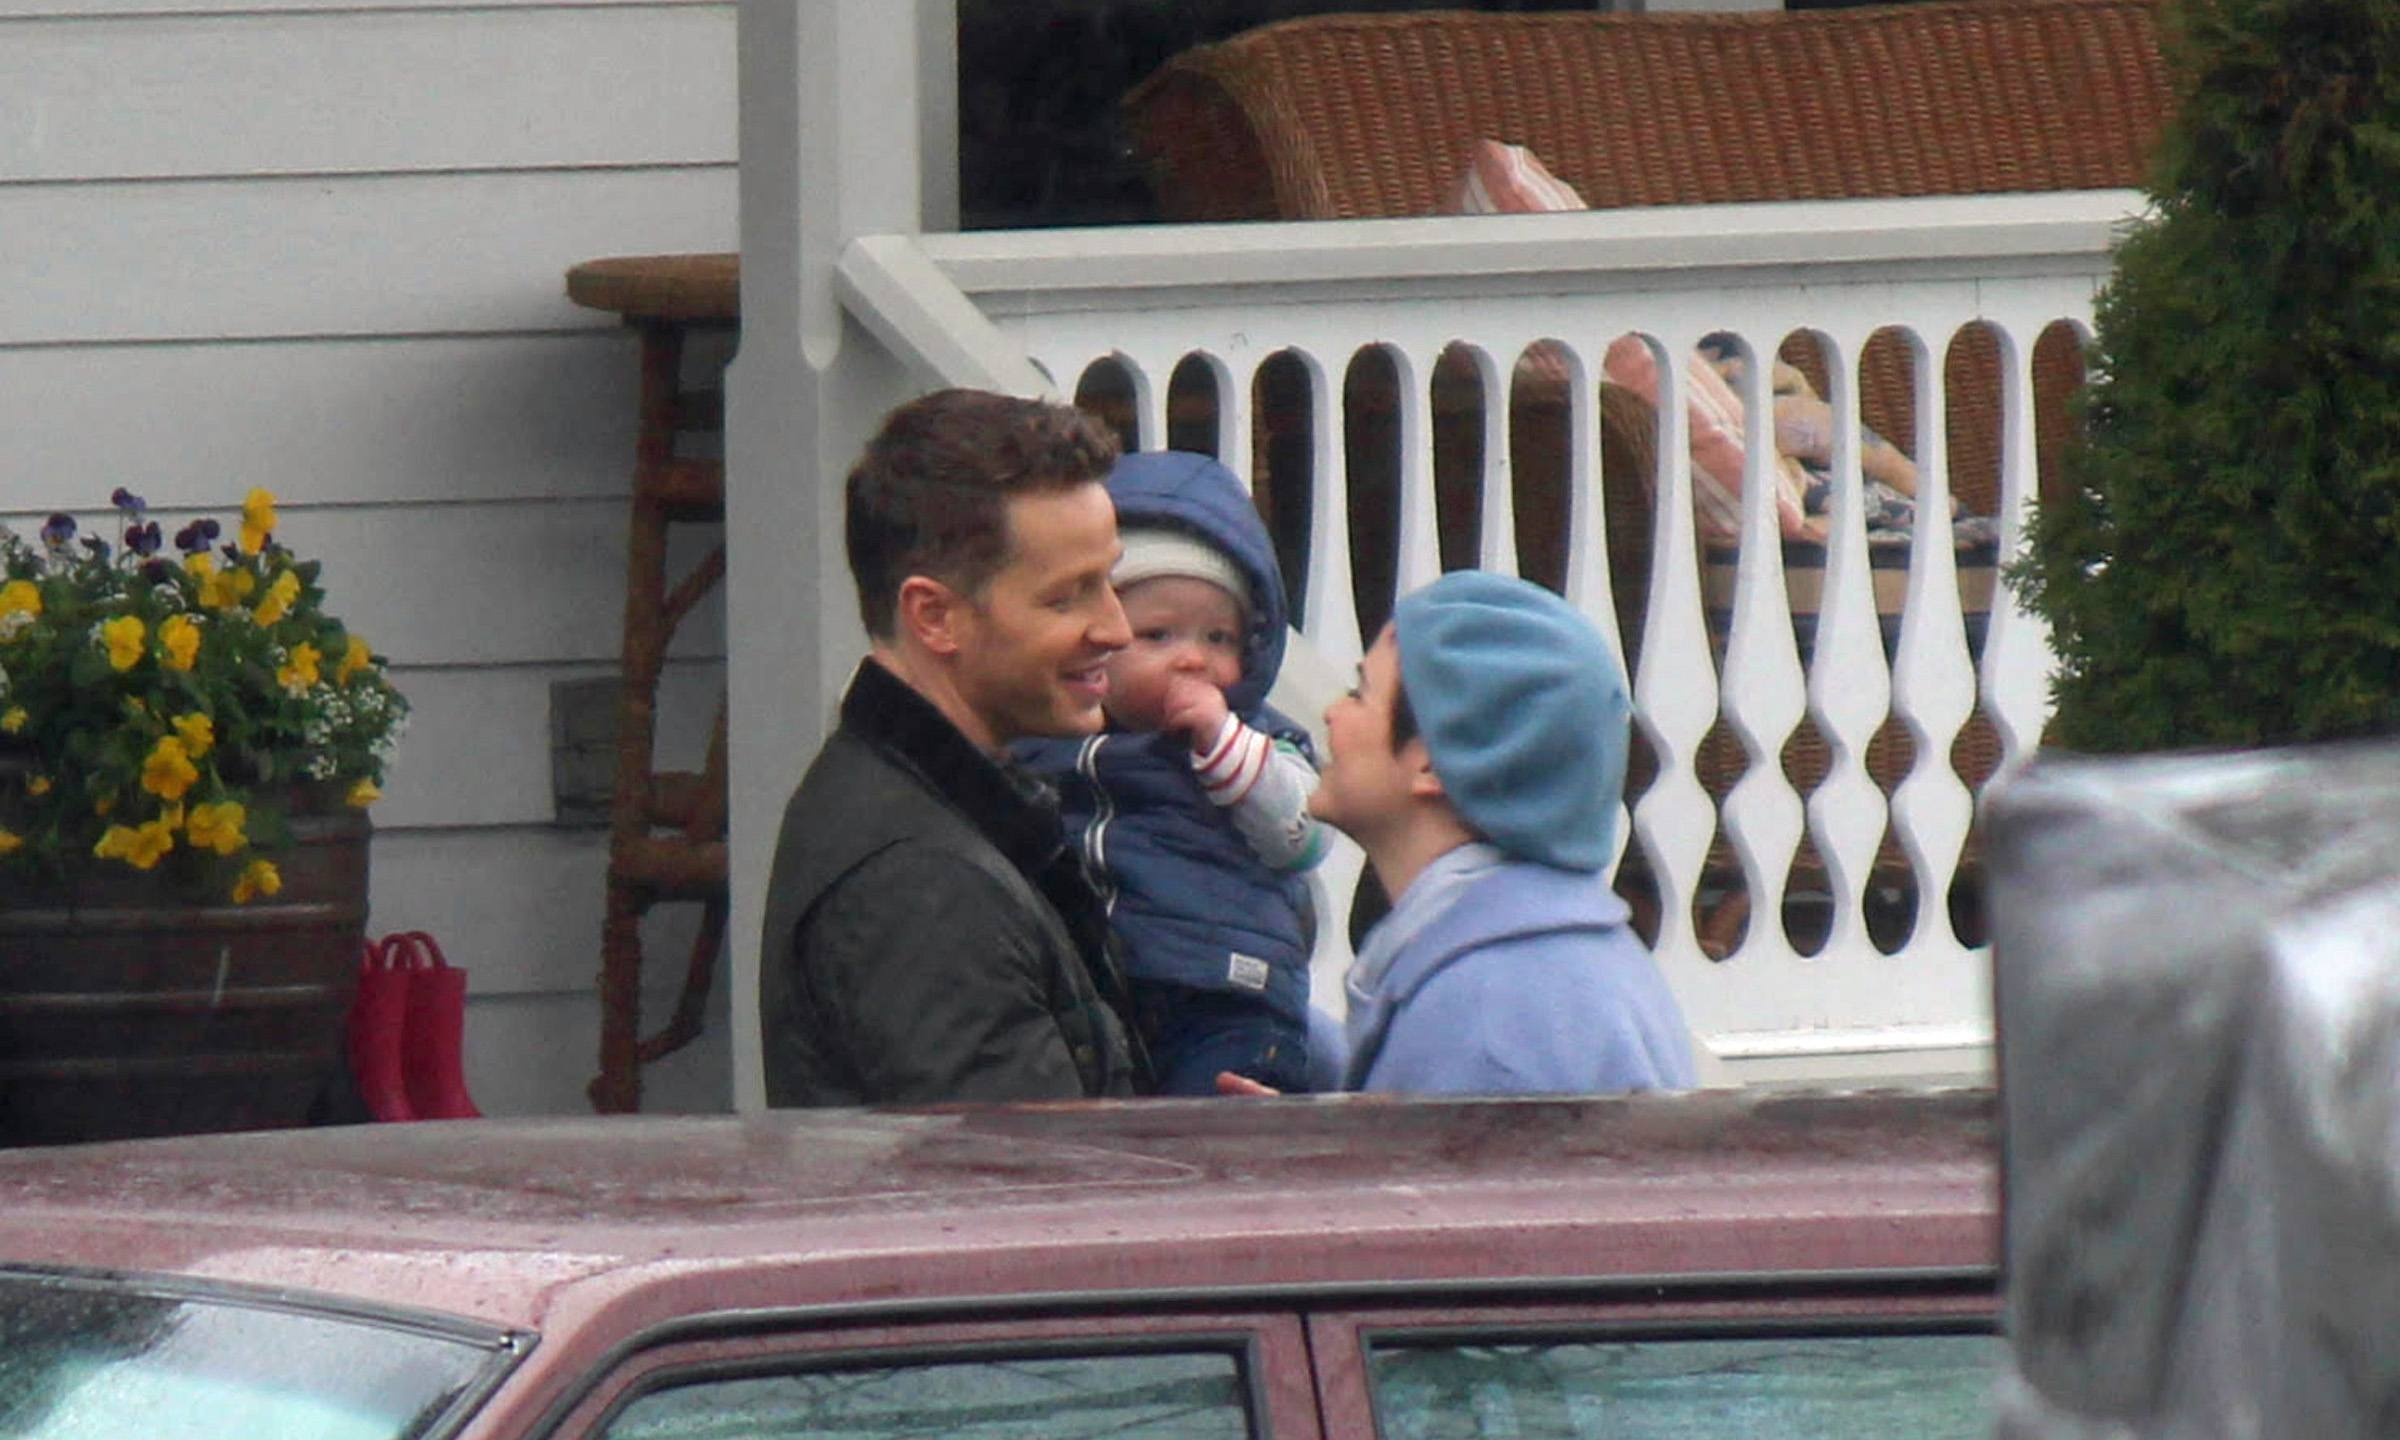 'Once Upon A Time' films in Steveston for possibly the last time ever (PHOTOS)